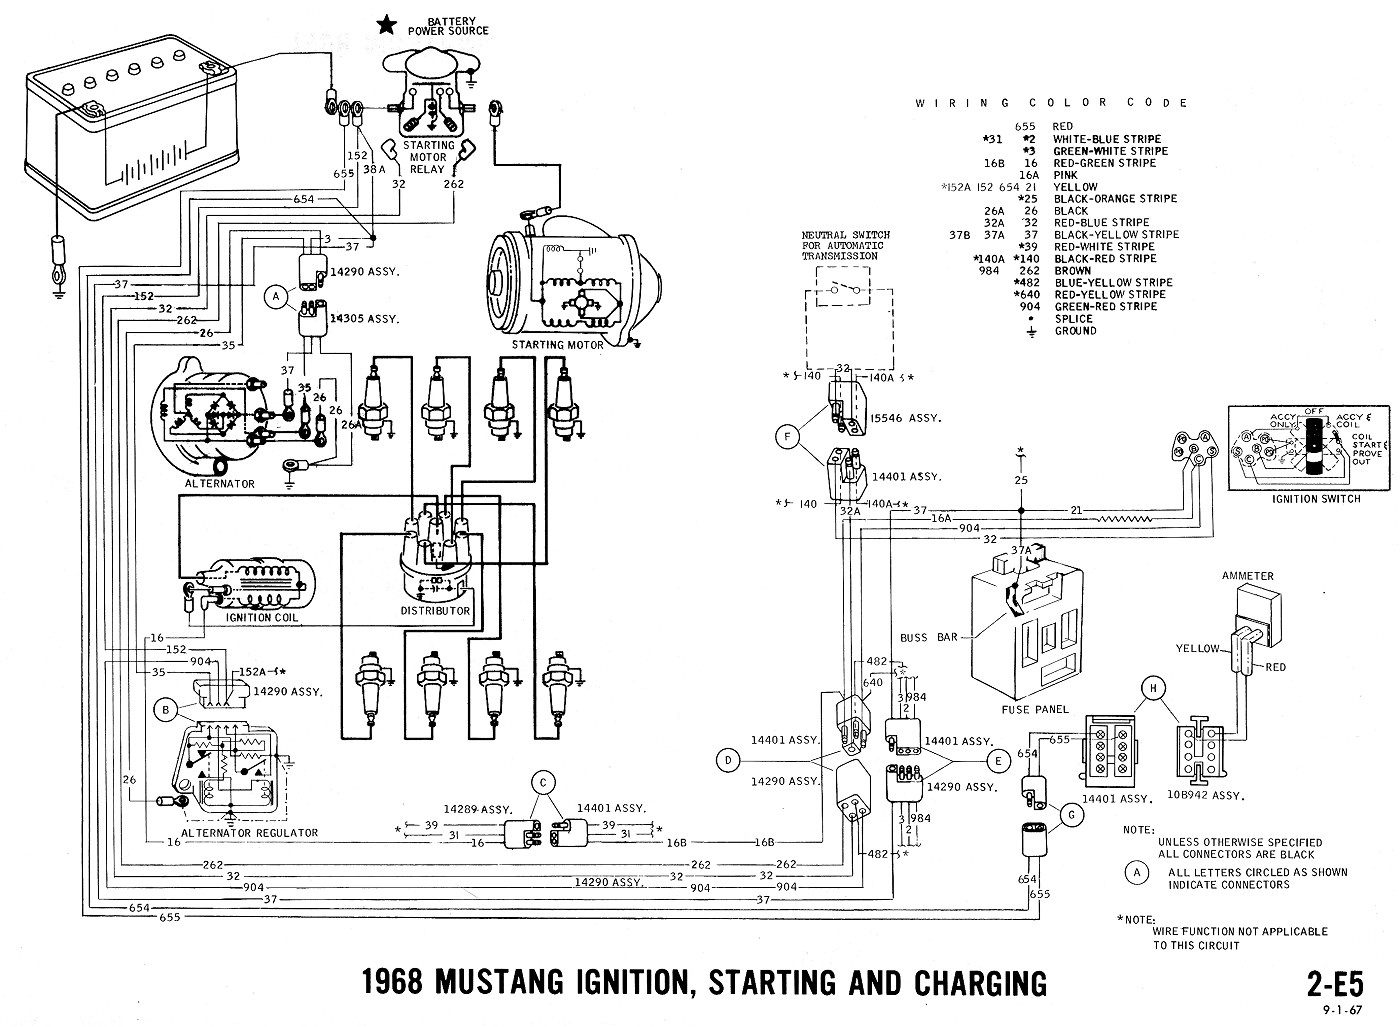 1968 Ford Mustang Ignition Wiring Diagram List Of Schematic Ez Go St 40 Diagrams Evolving Software Rh Peterfranza Com